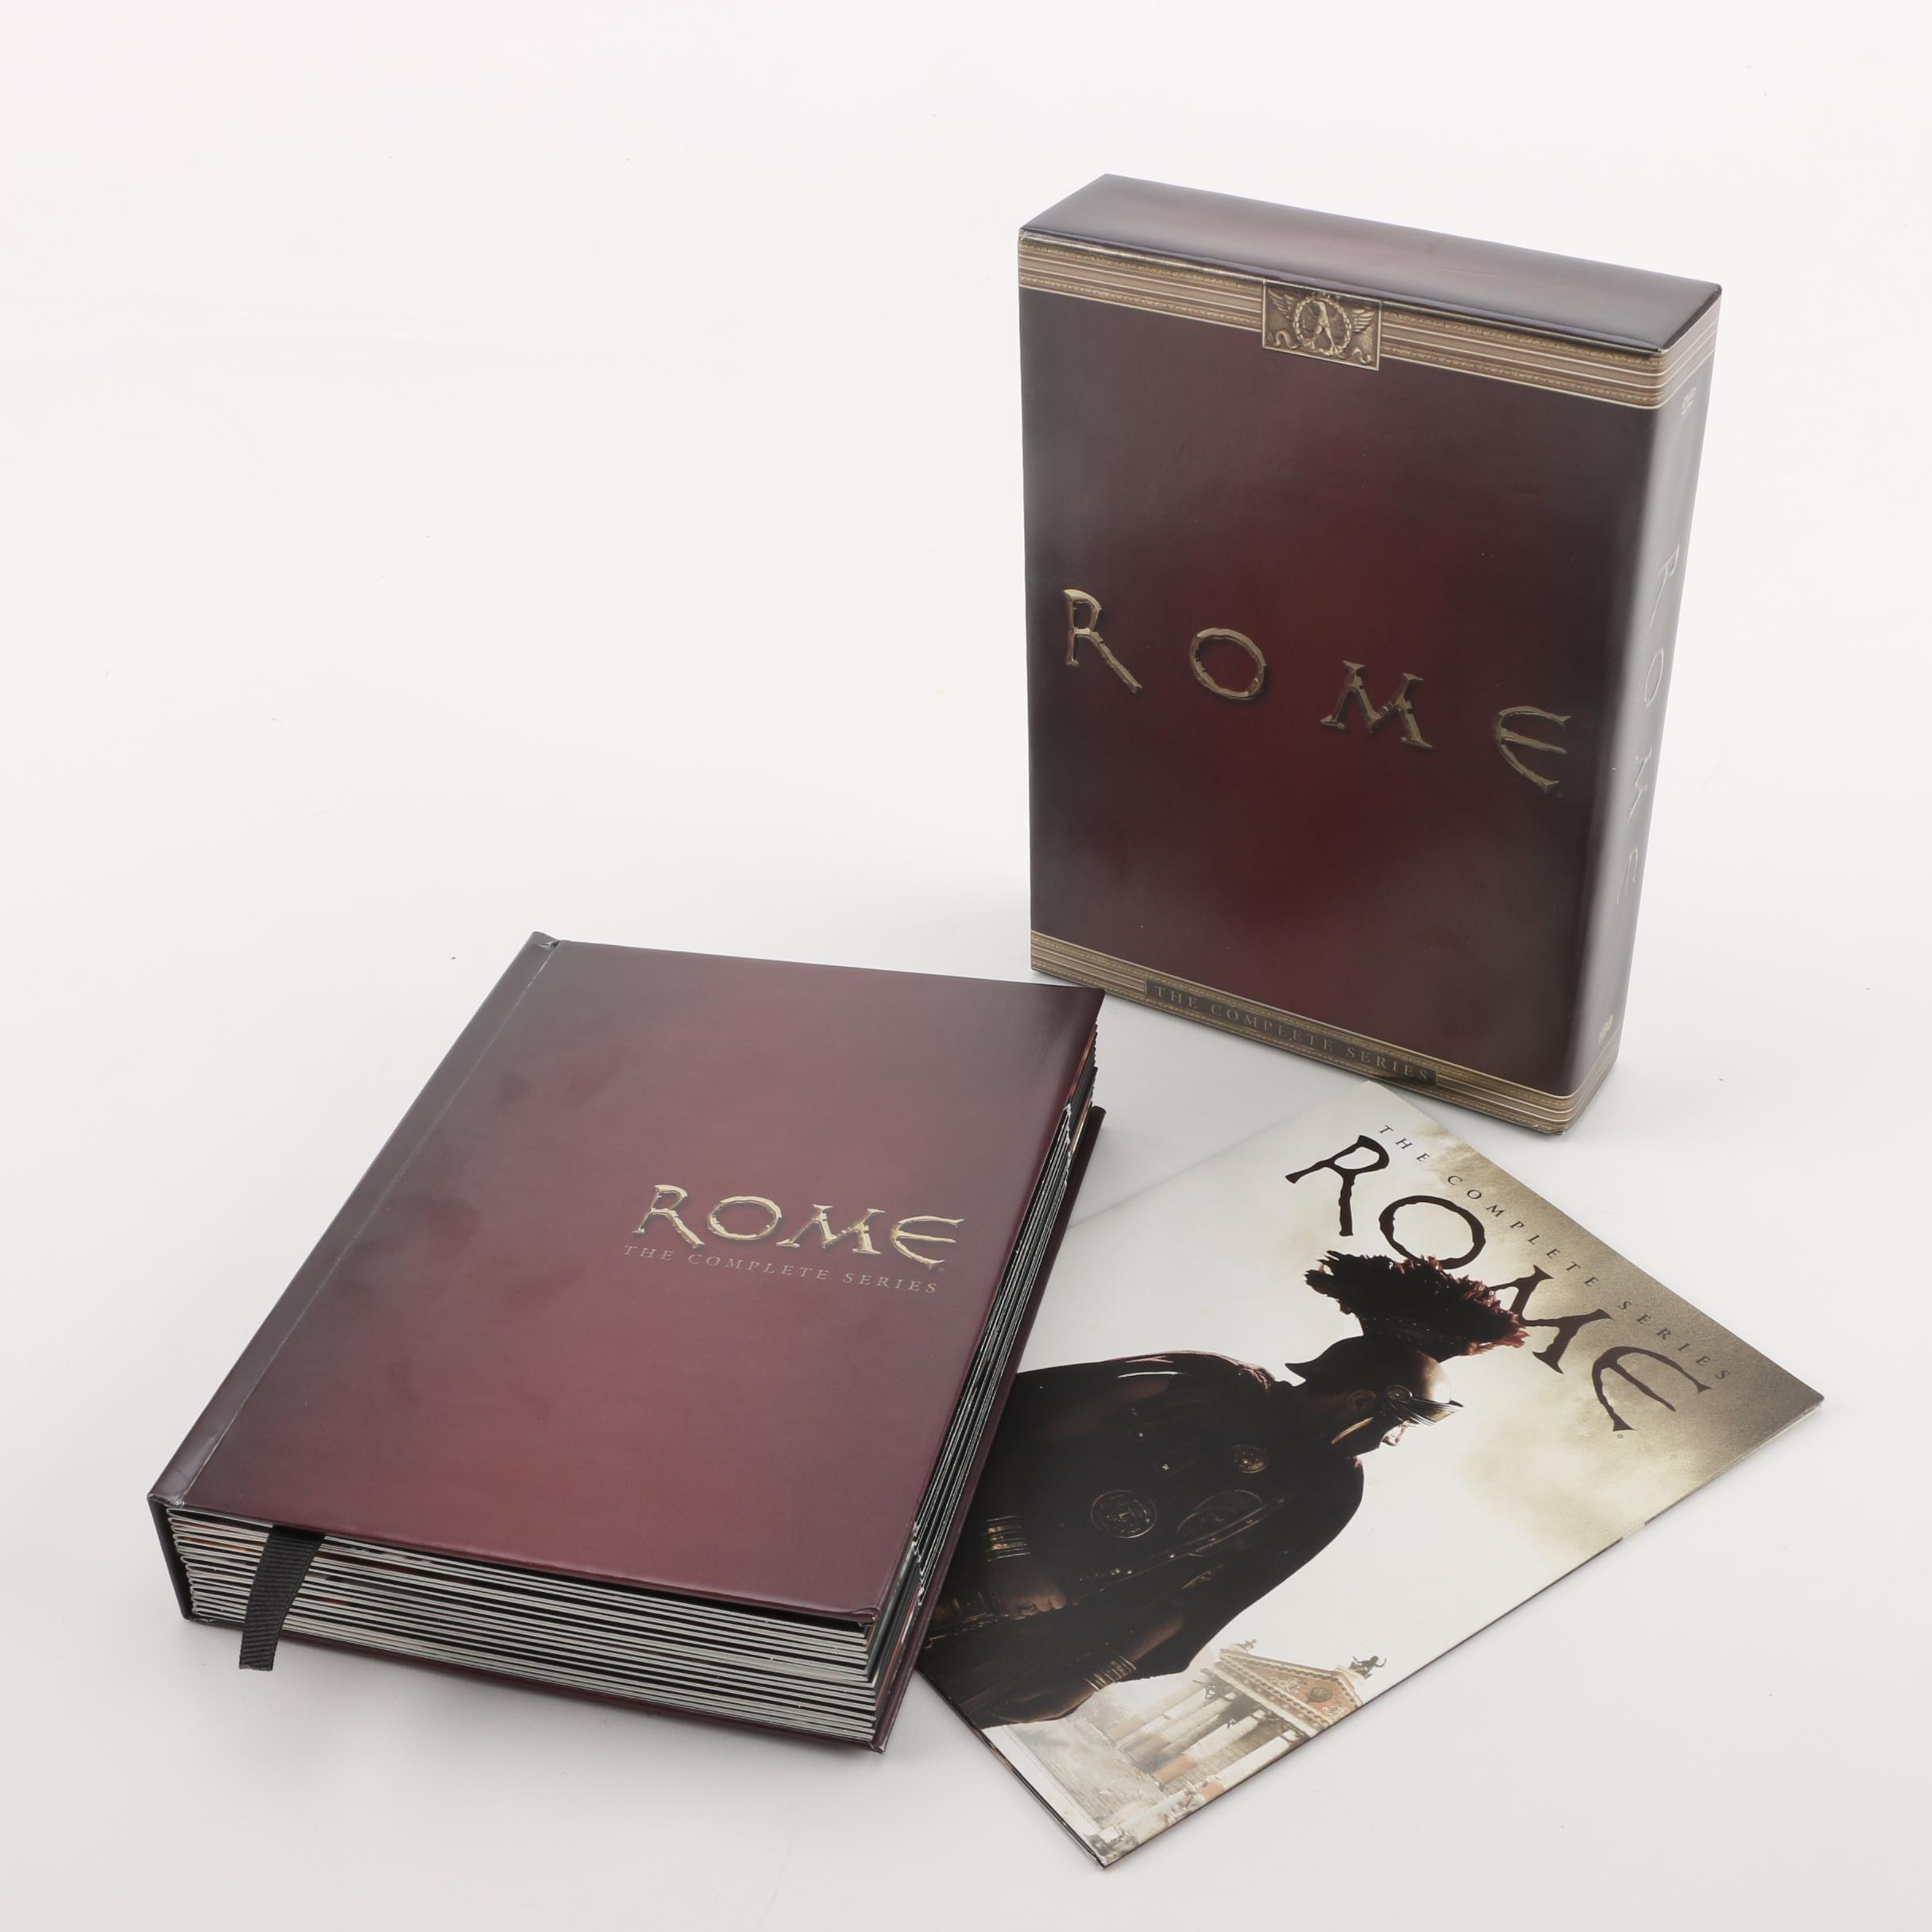 Rome The Complete Series on DVD